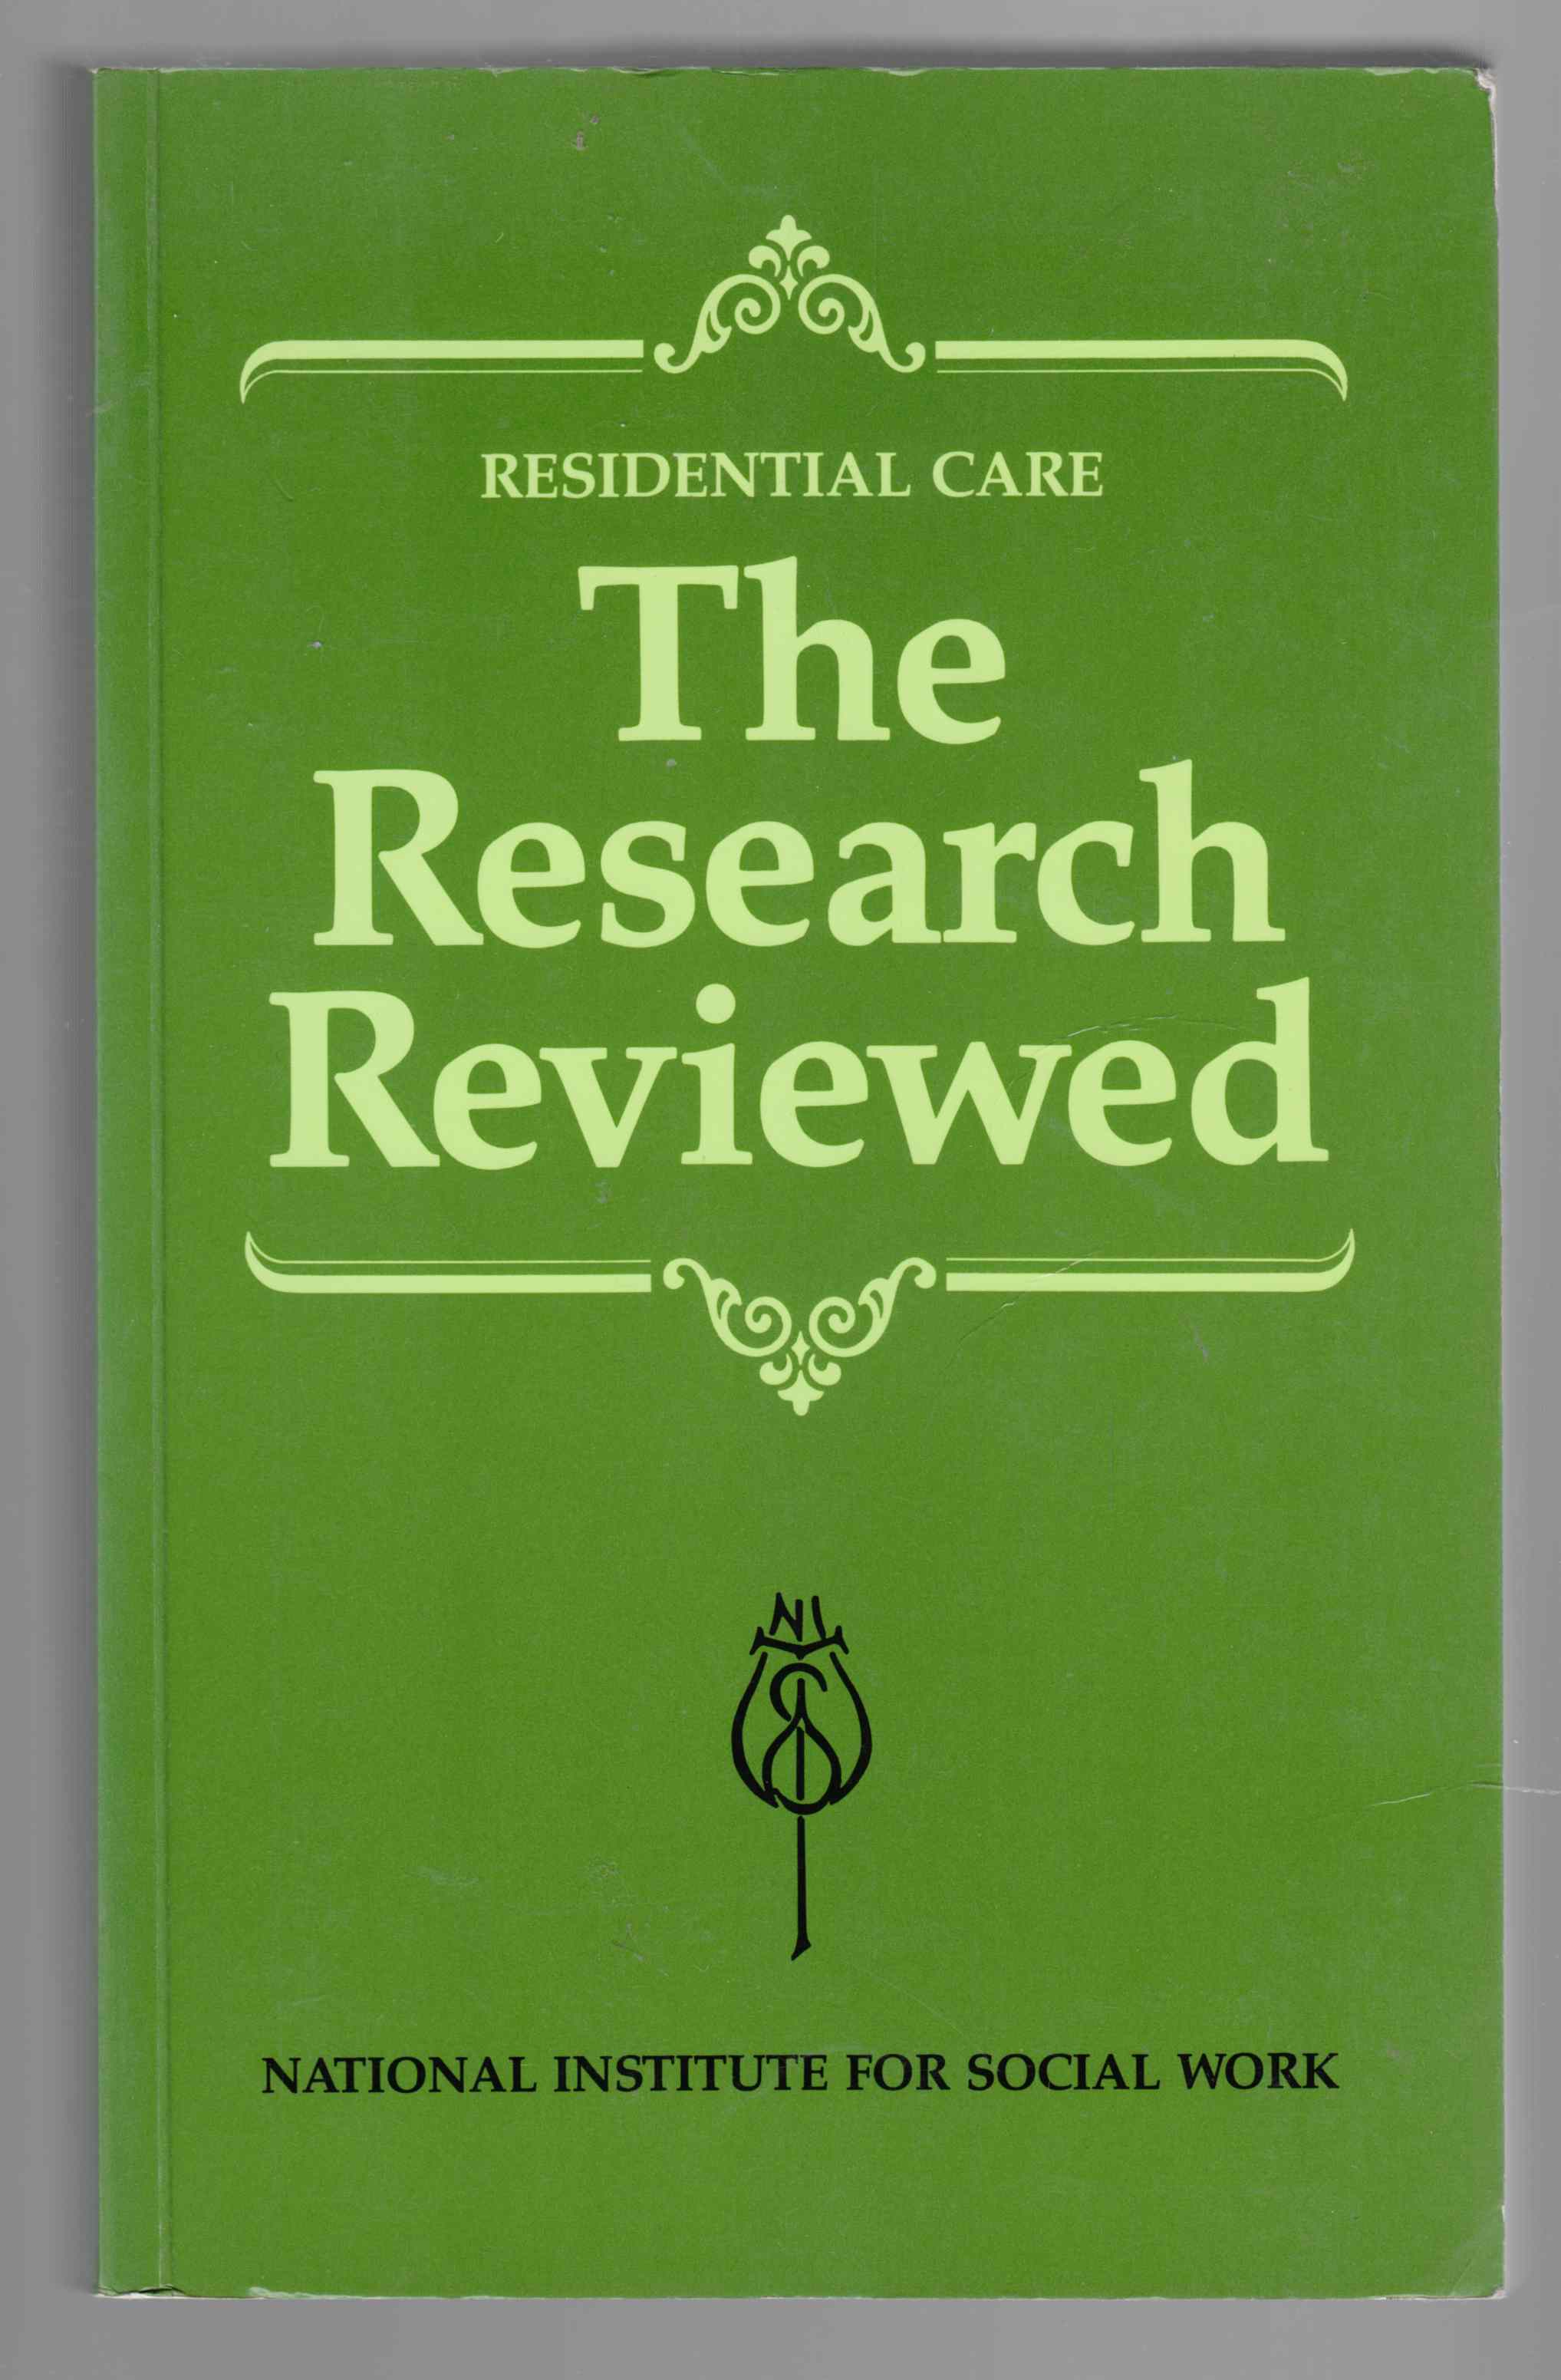 Image for Residential Care The Research Reviewed